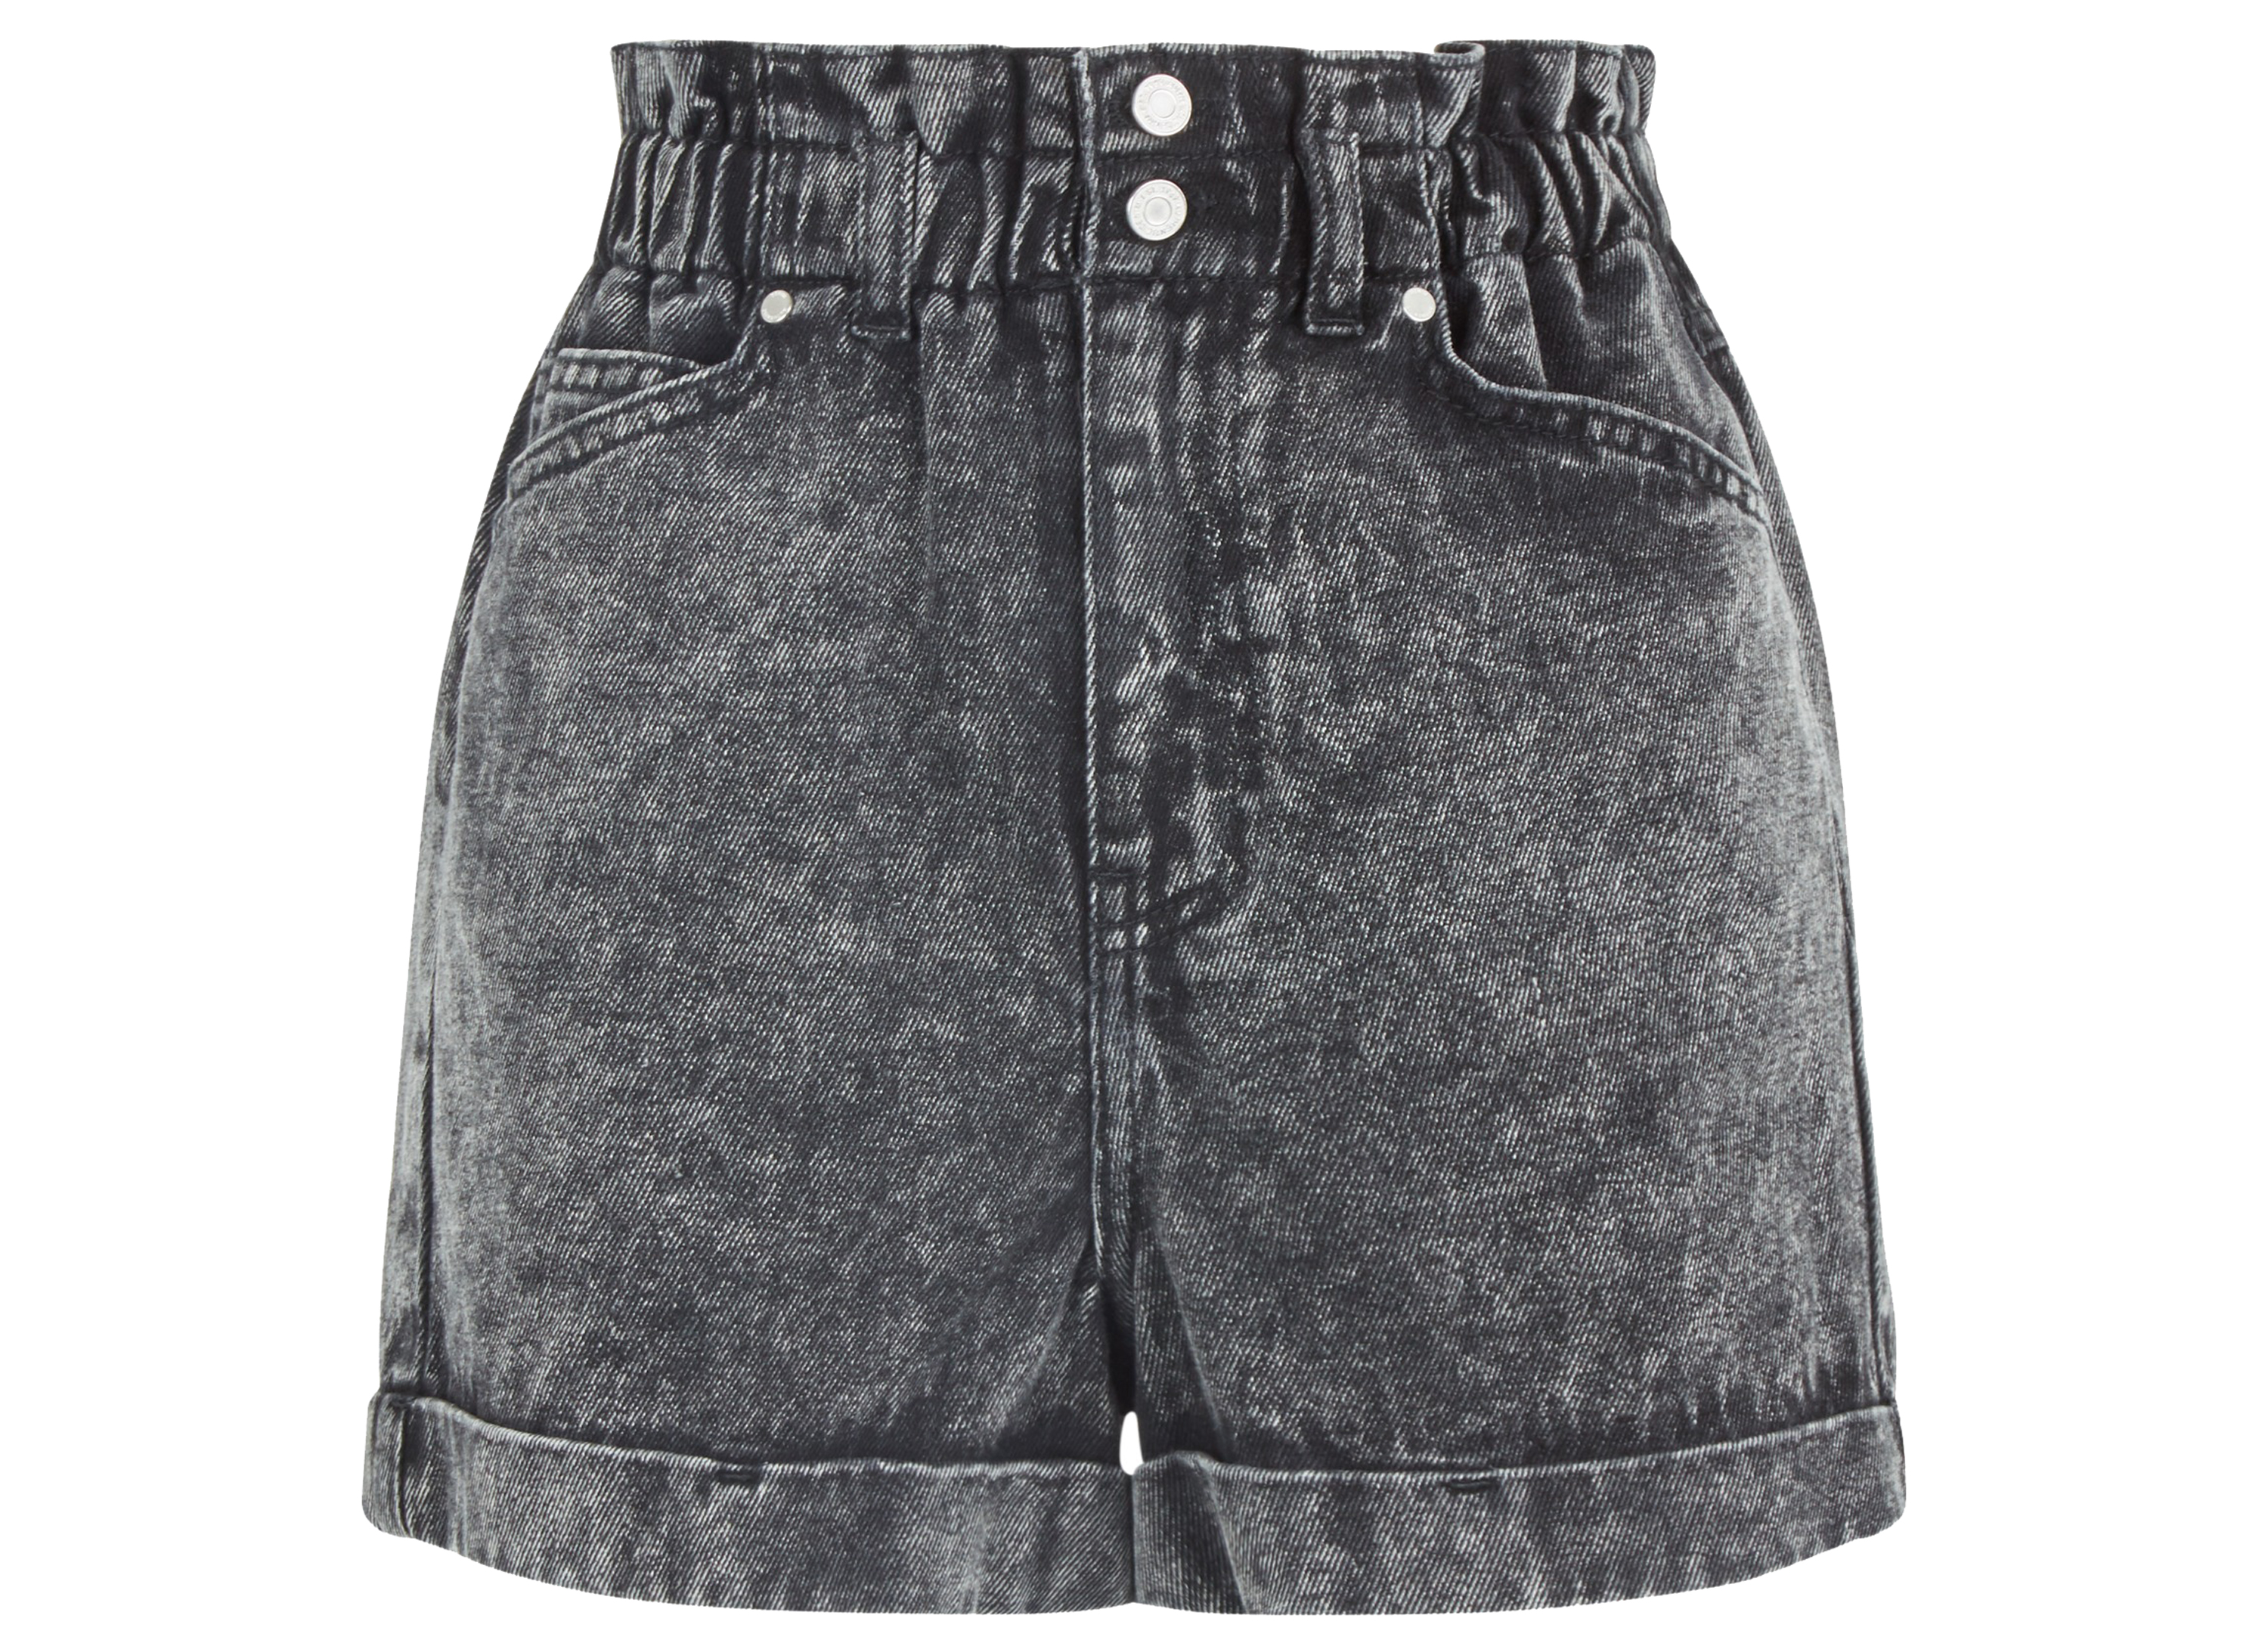 New Look Black Acid Wash Paperbag Denim Shorts